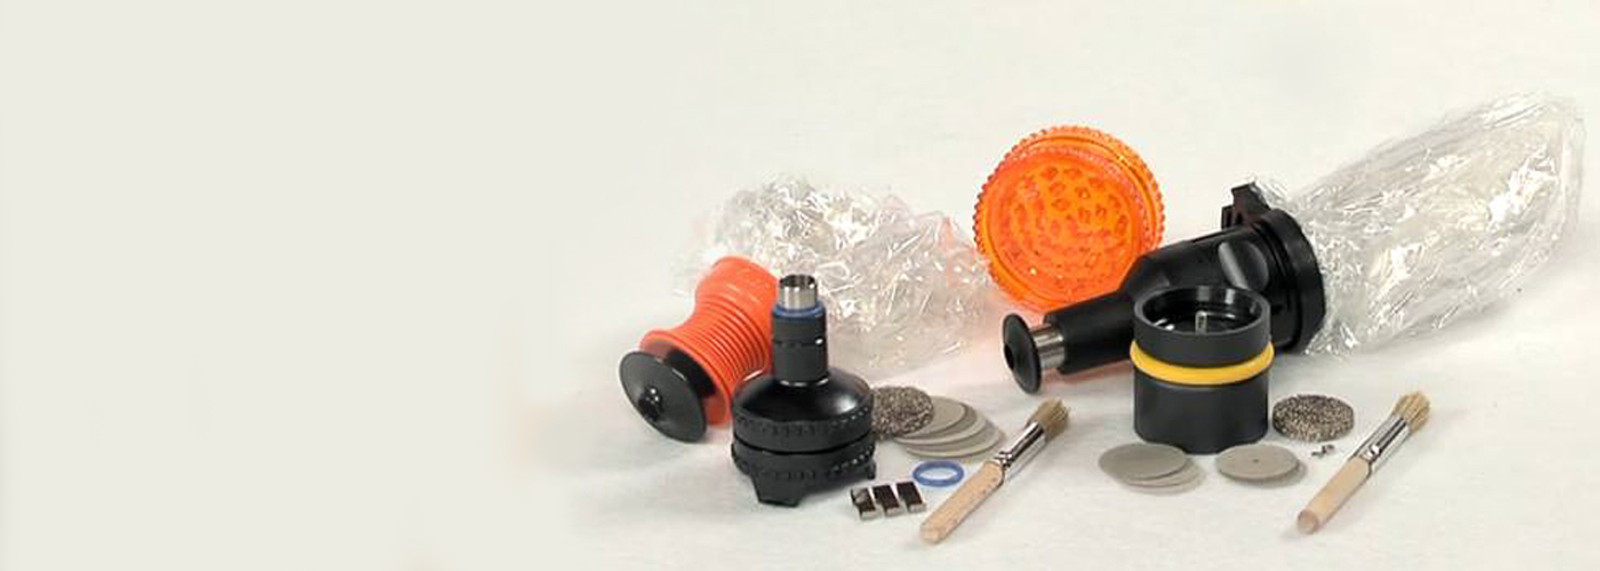 Parts for Vaporizers